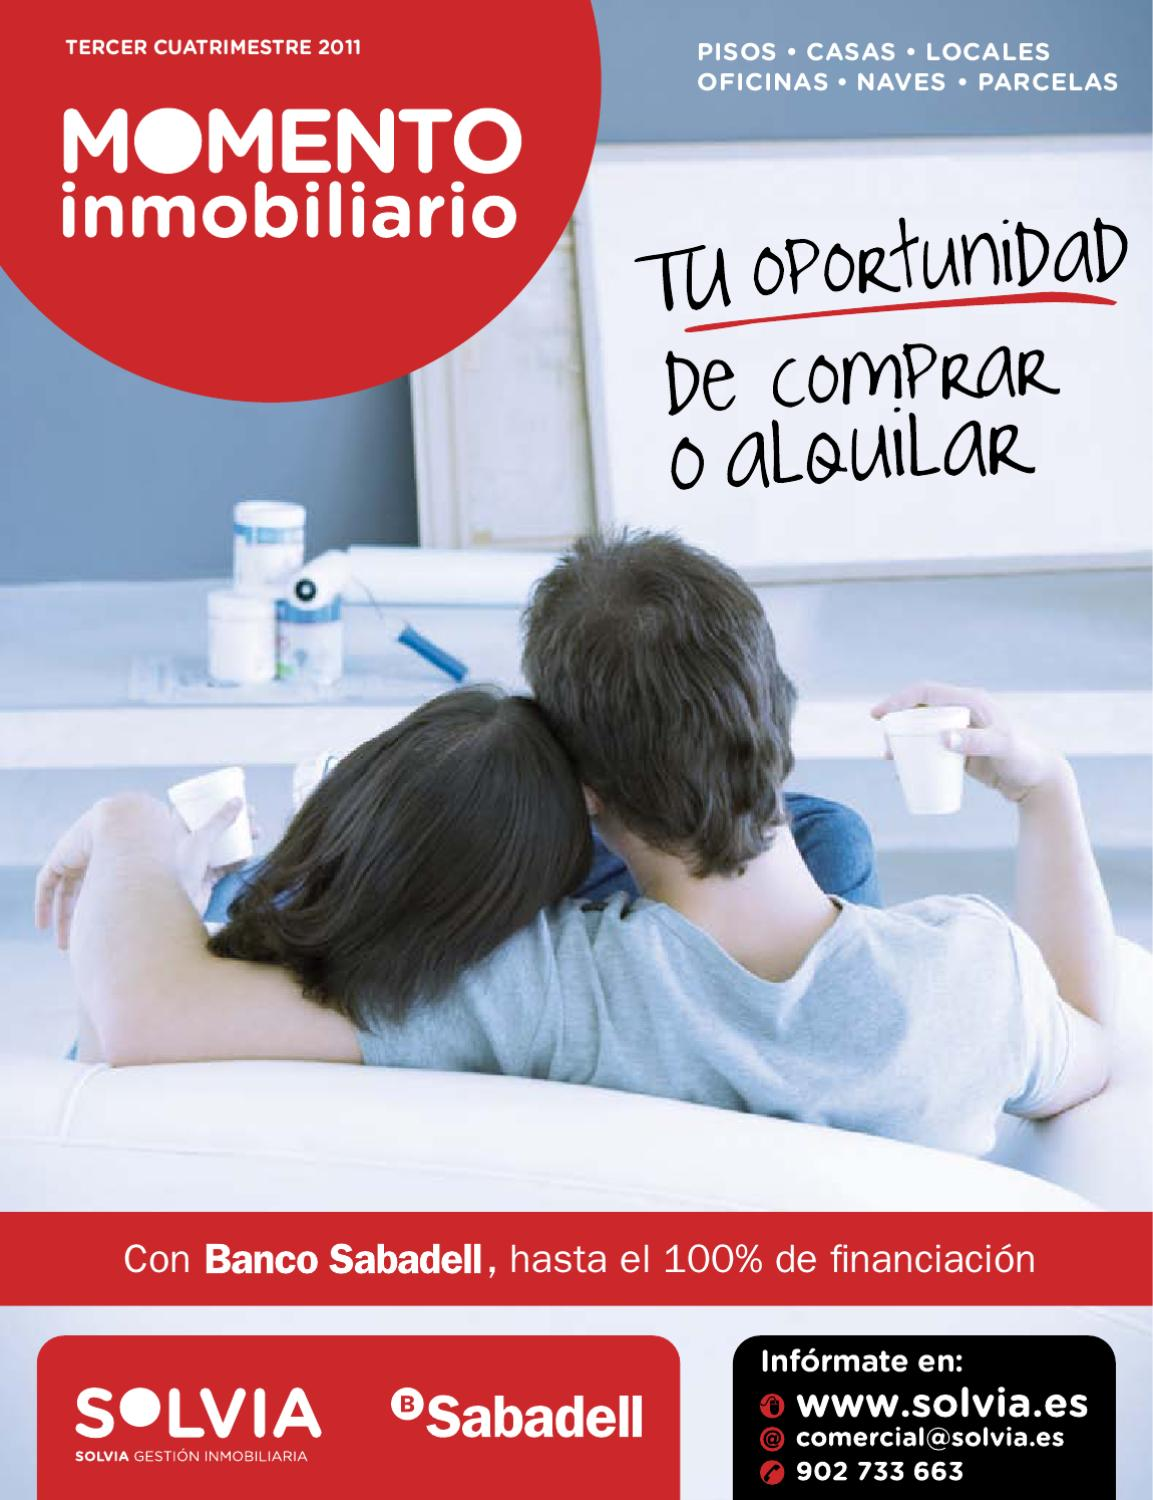 Momento inmobiliario solvia 3q11 by banco sabadell issuu for Pisos de banco sabadell